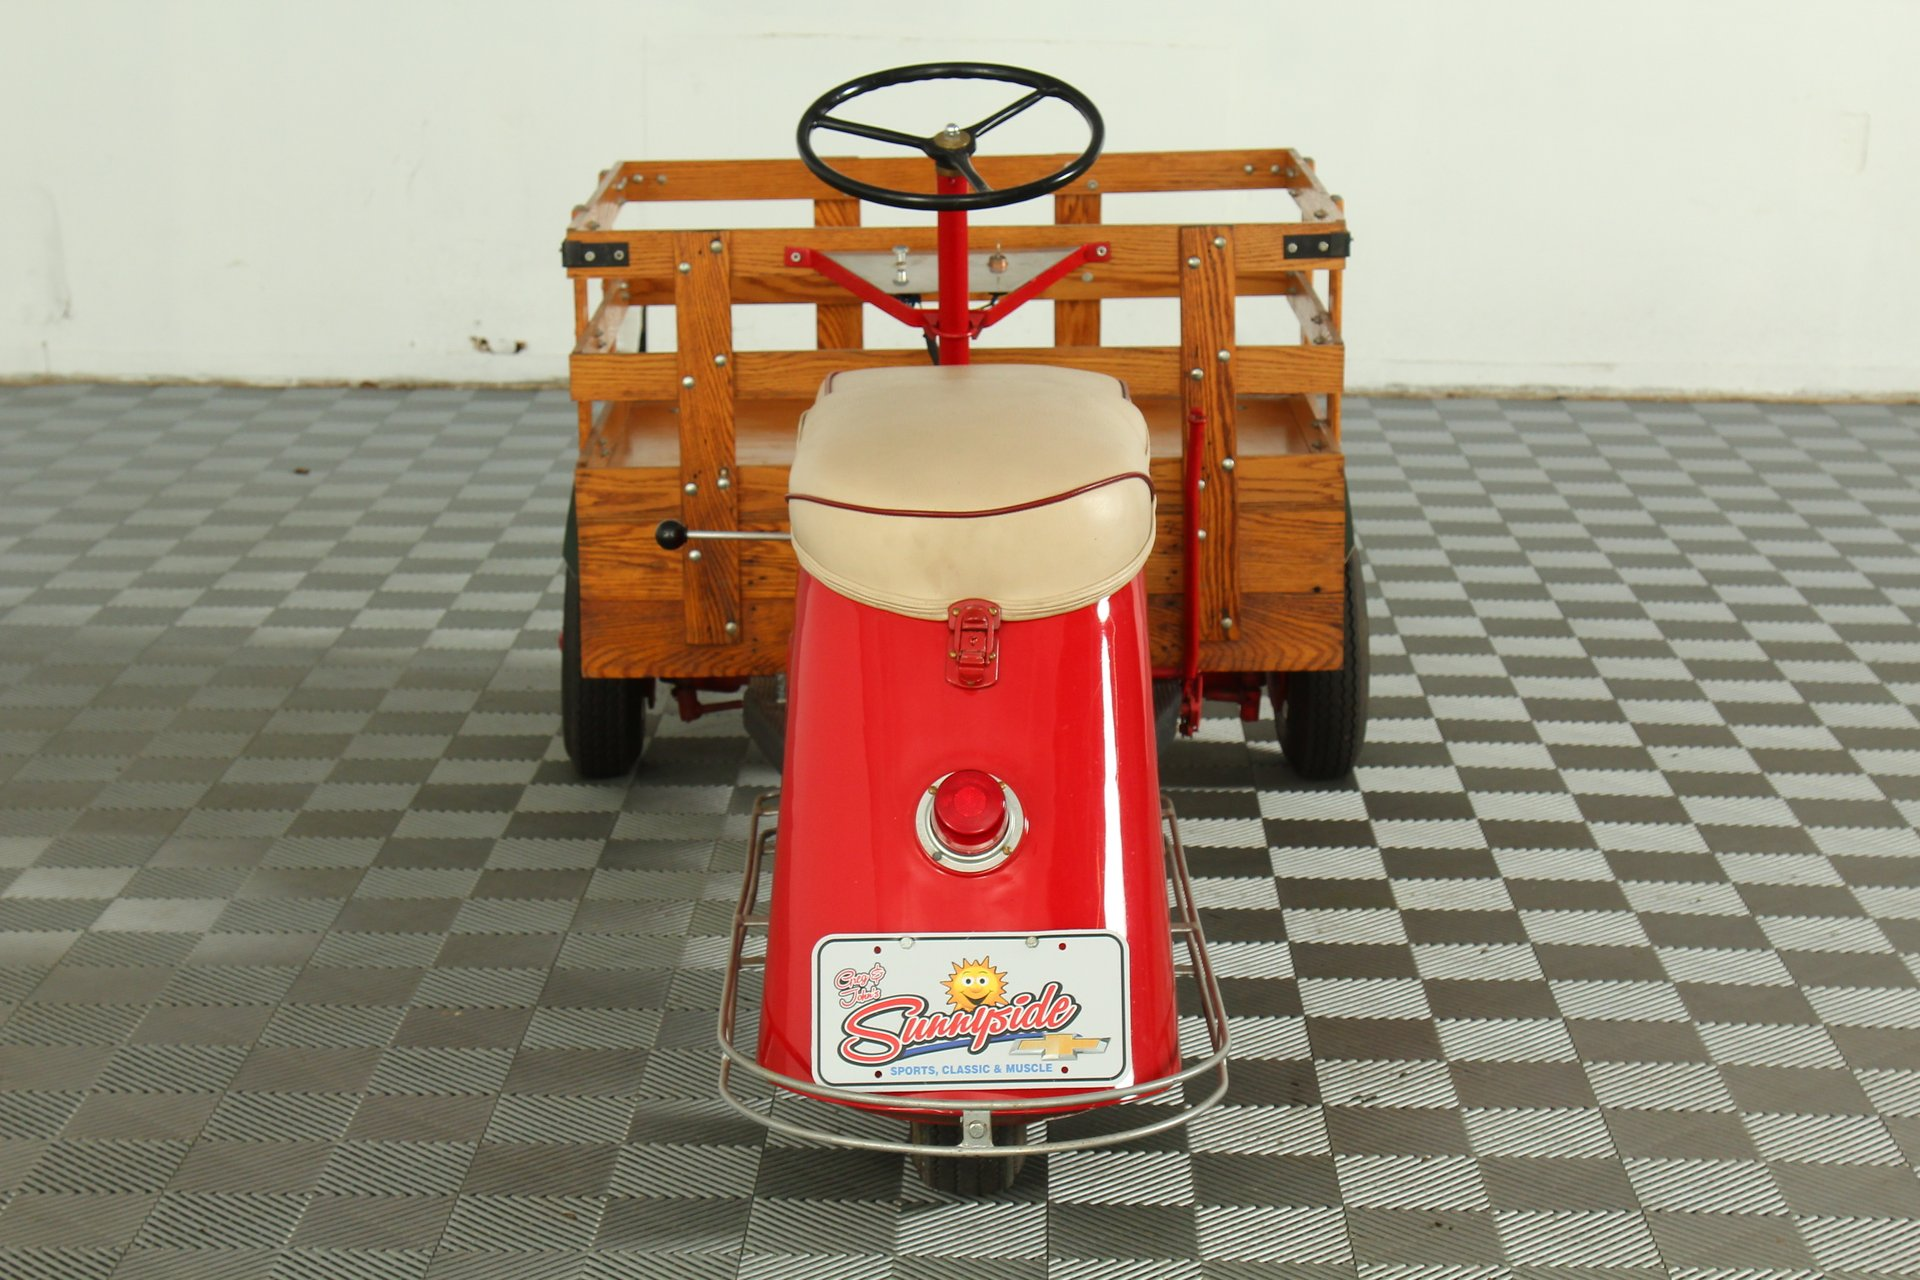 1960 Cushman Scooter